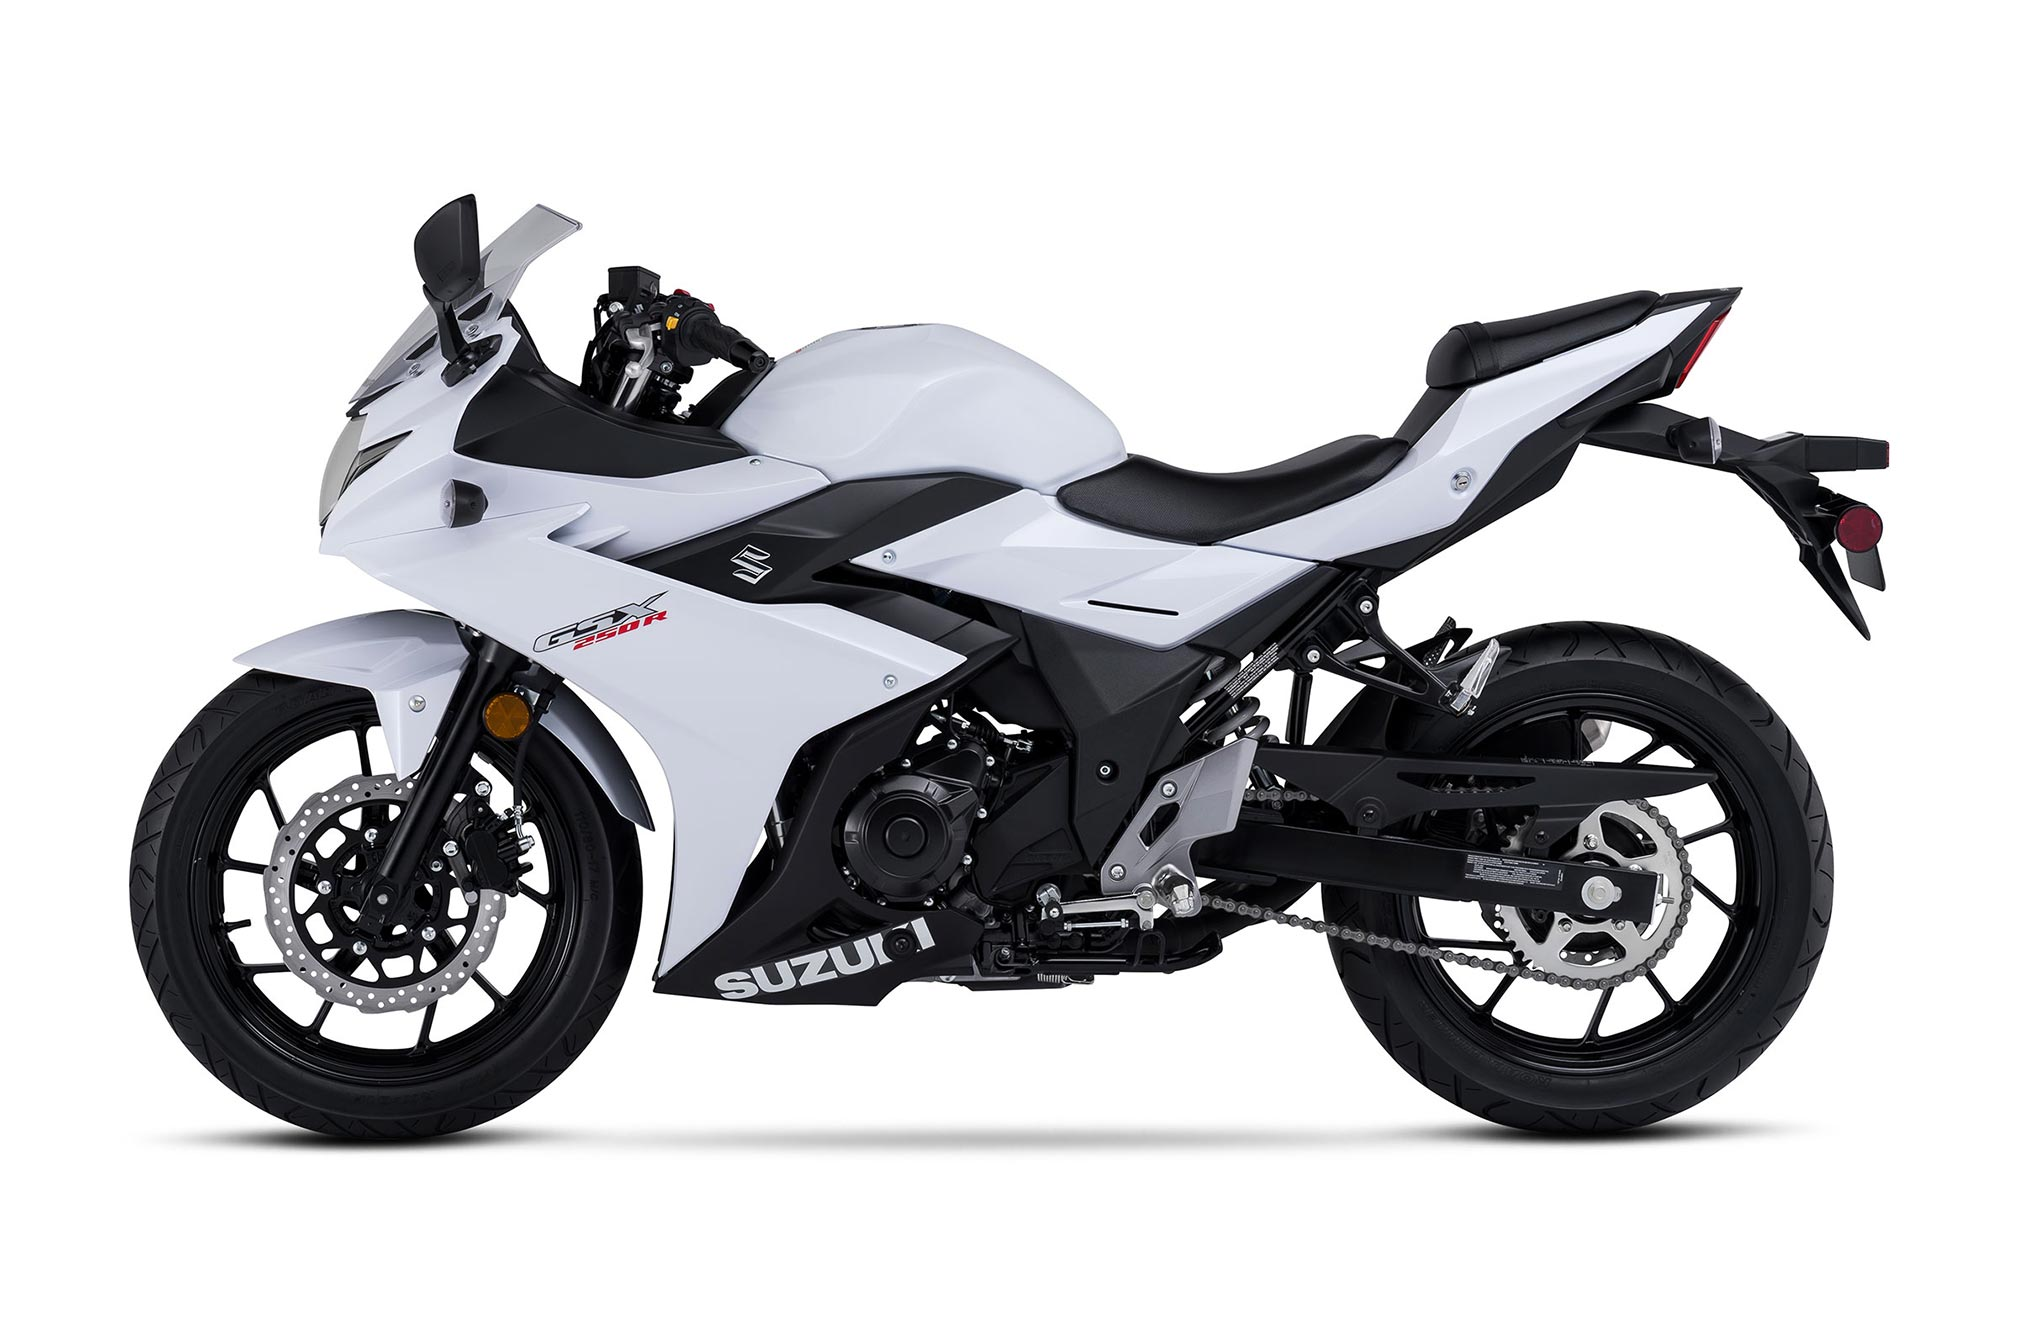 Wing Gold >> 2018 Suzuki GSX250R Review - TotalMotorcycle